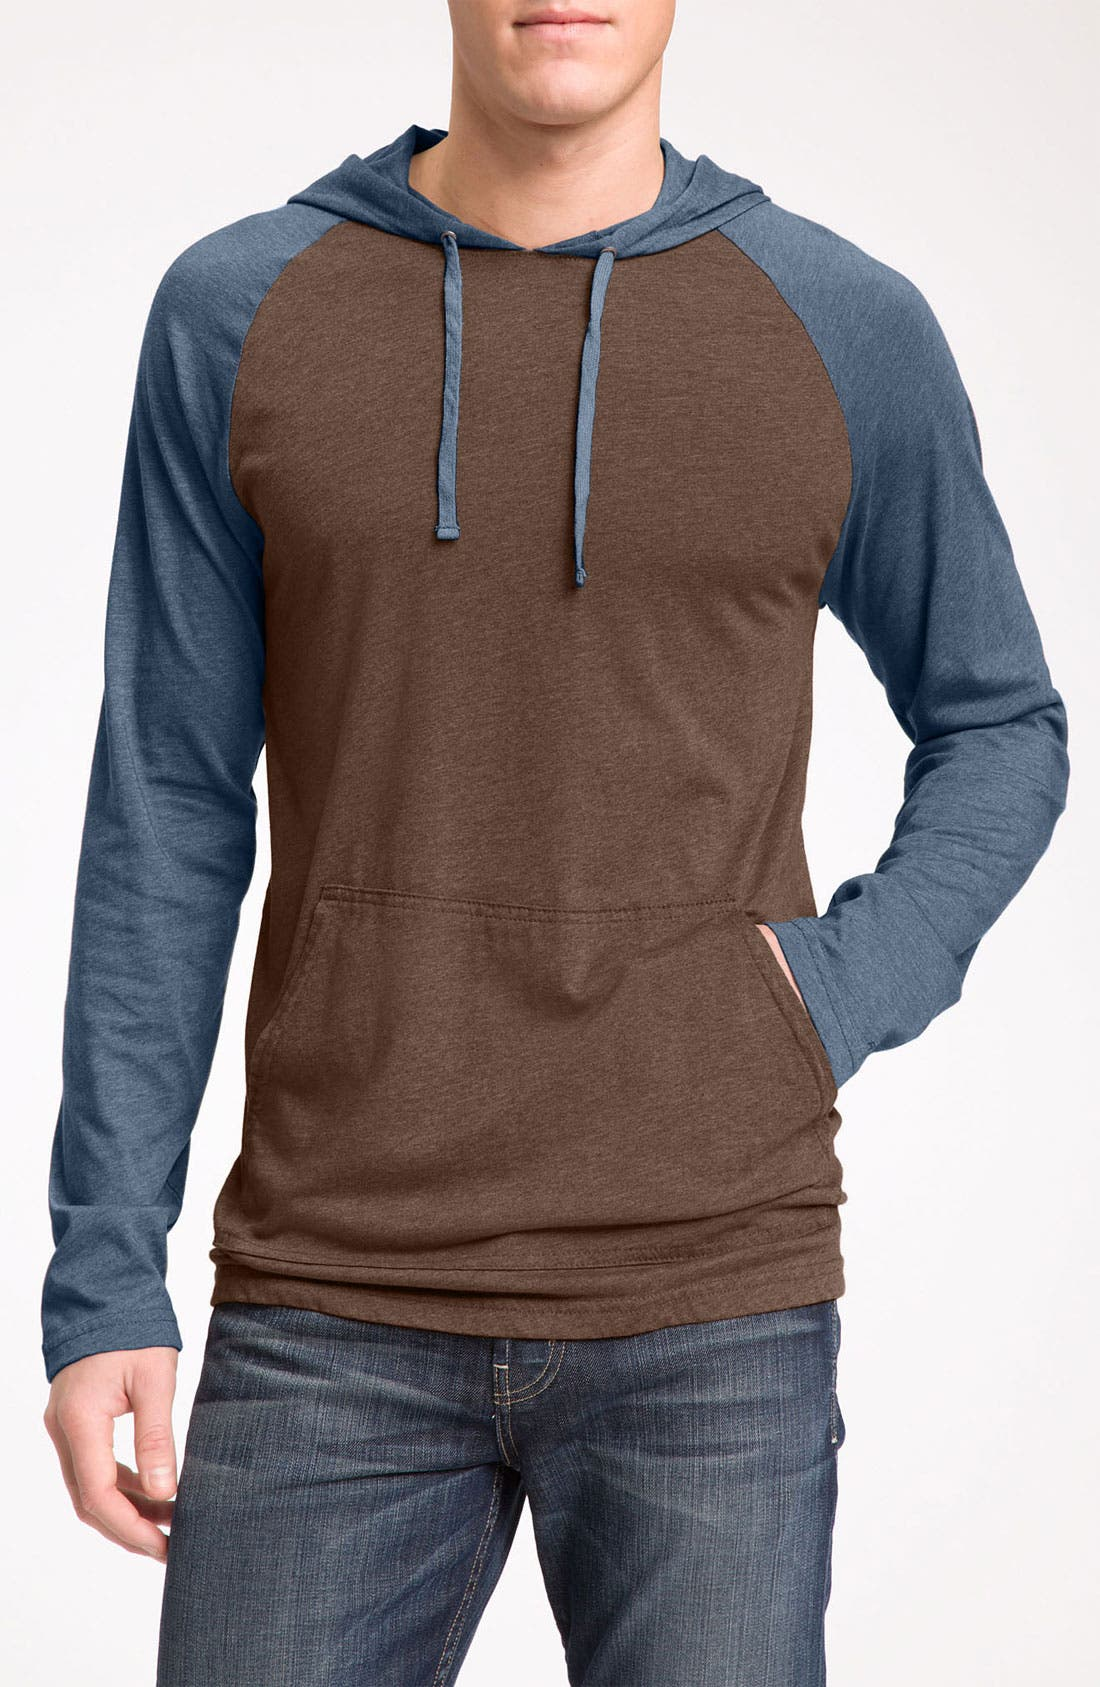 Alternate Image 1 Selected - RVCA 'Castro' Pullover Hoodie